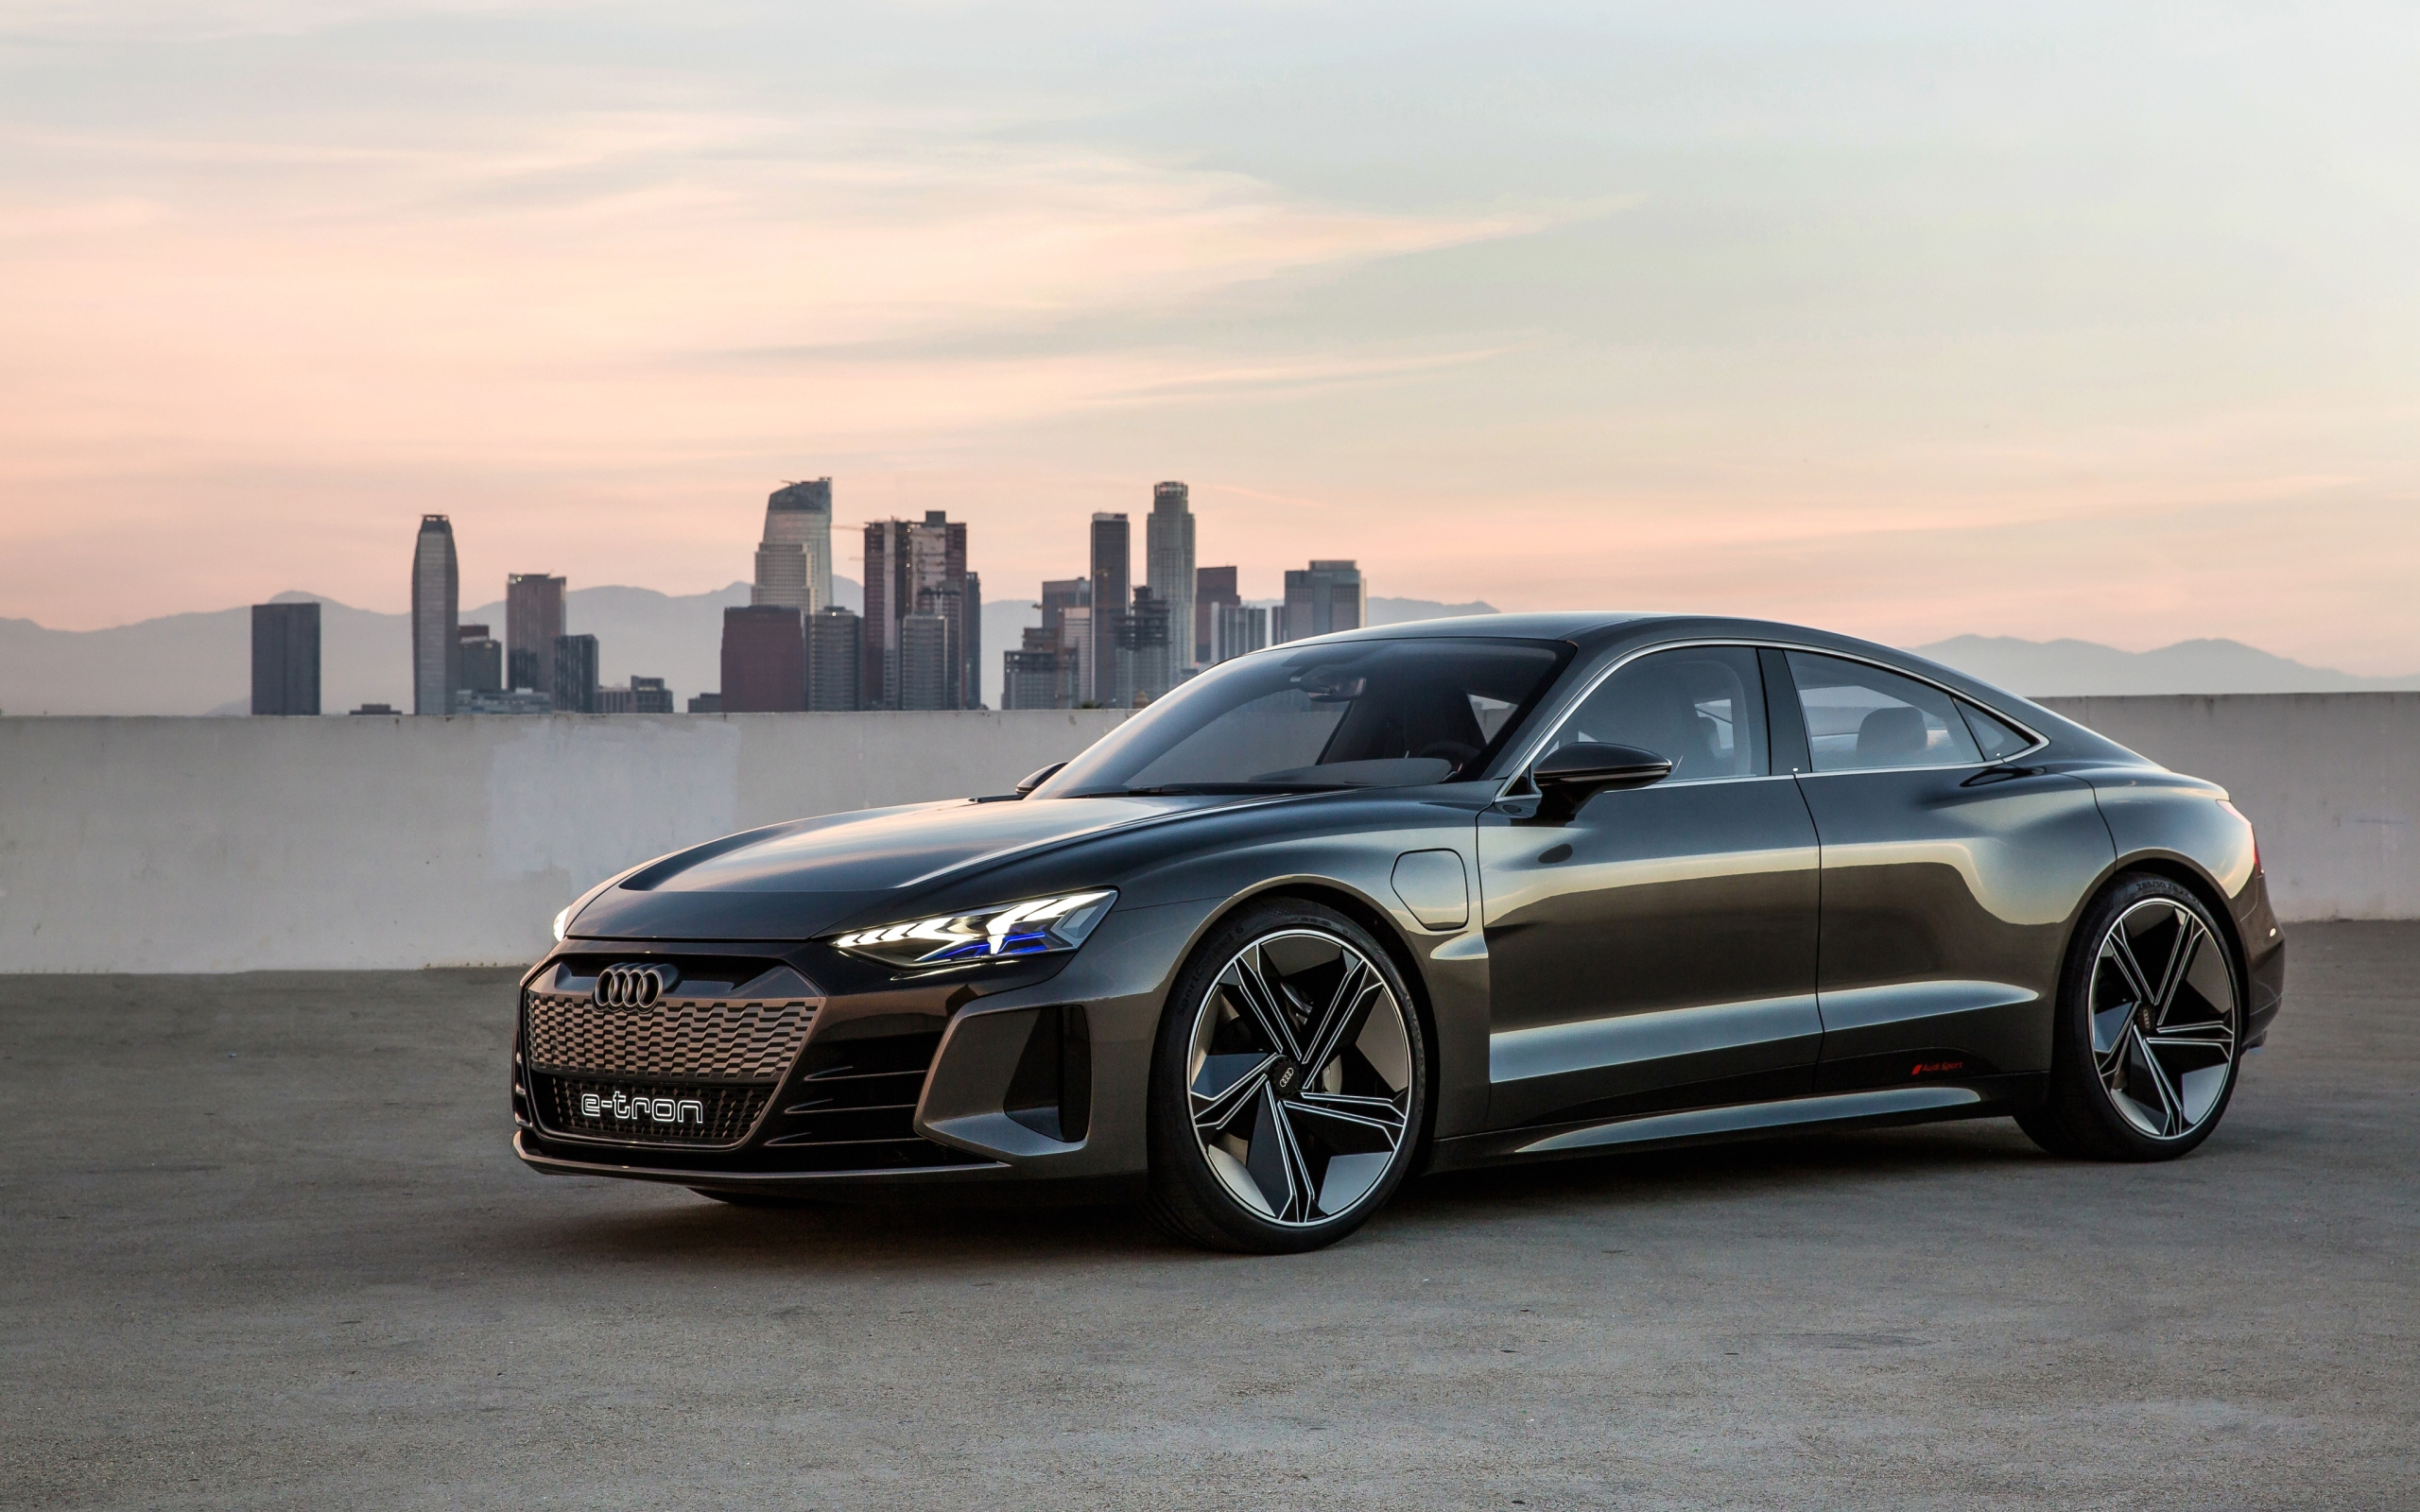 Wallpaper Of Audi, Audi E-tron, Electric Car, City, Los